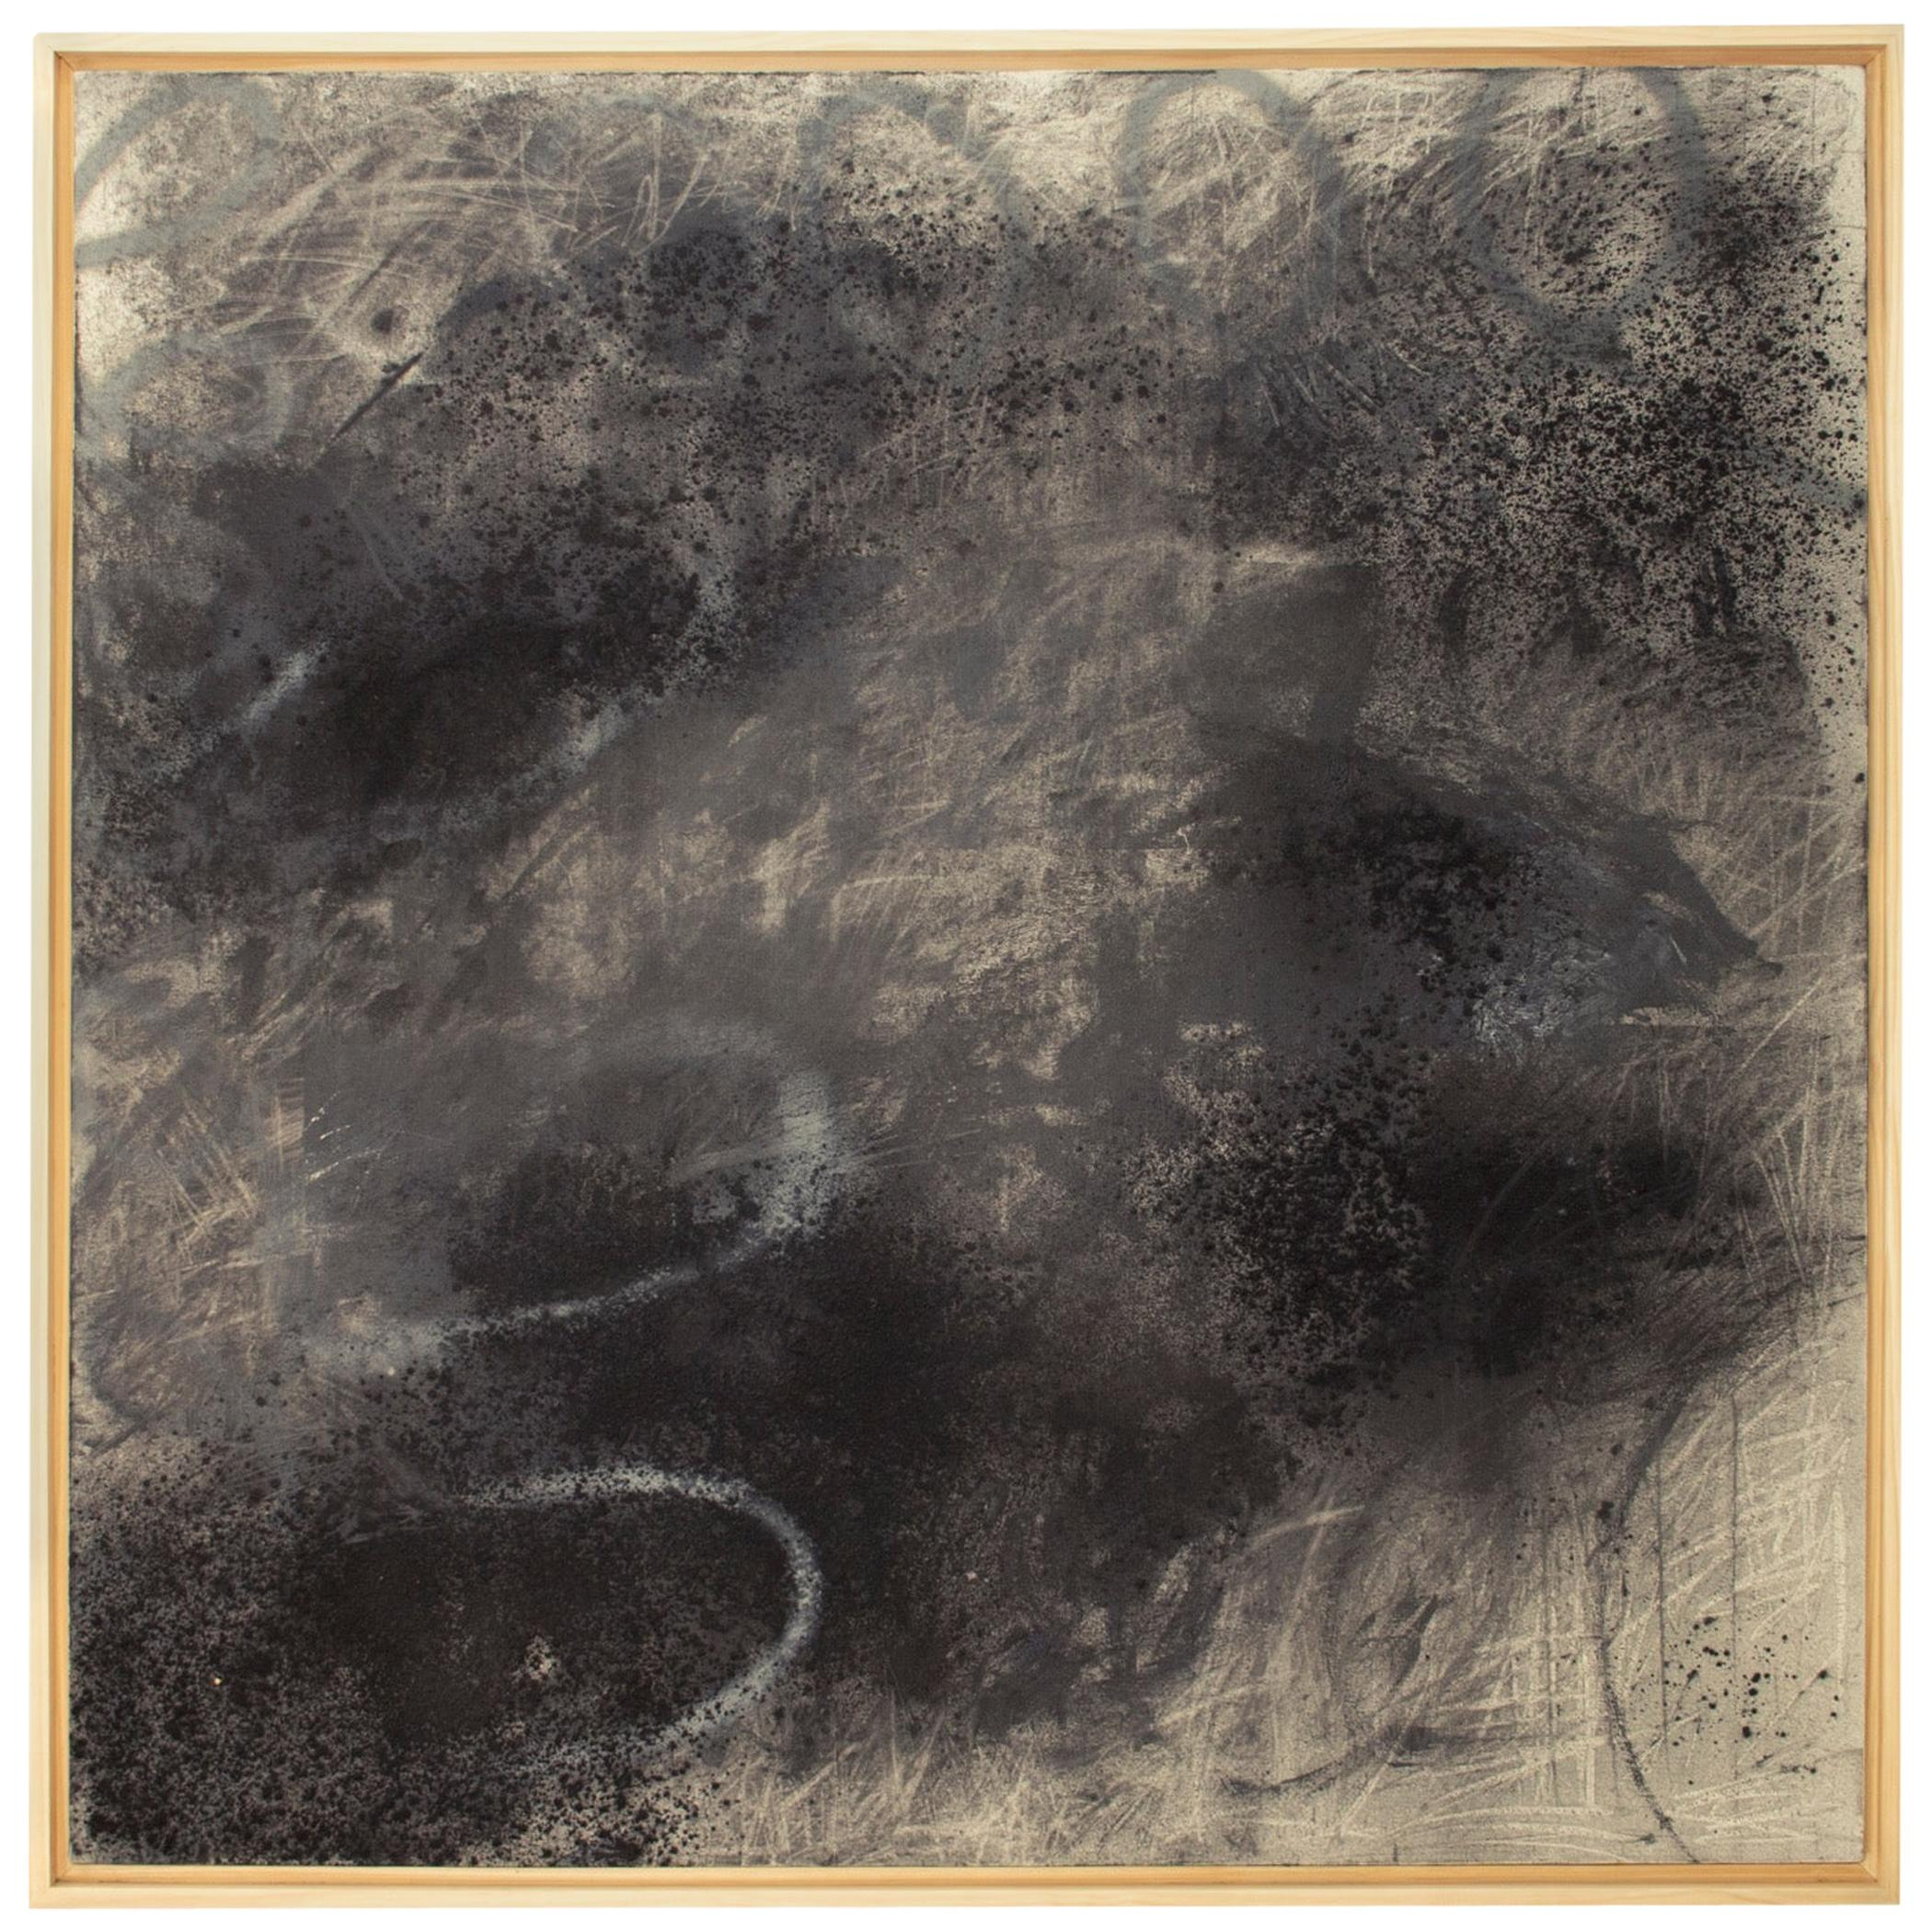 Untitled II Mixed-Media on Canvas by Sarah Dupré